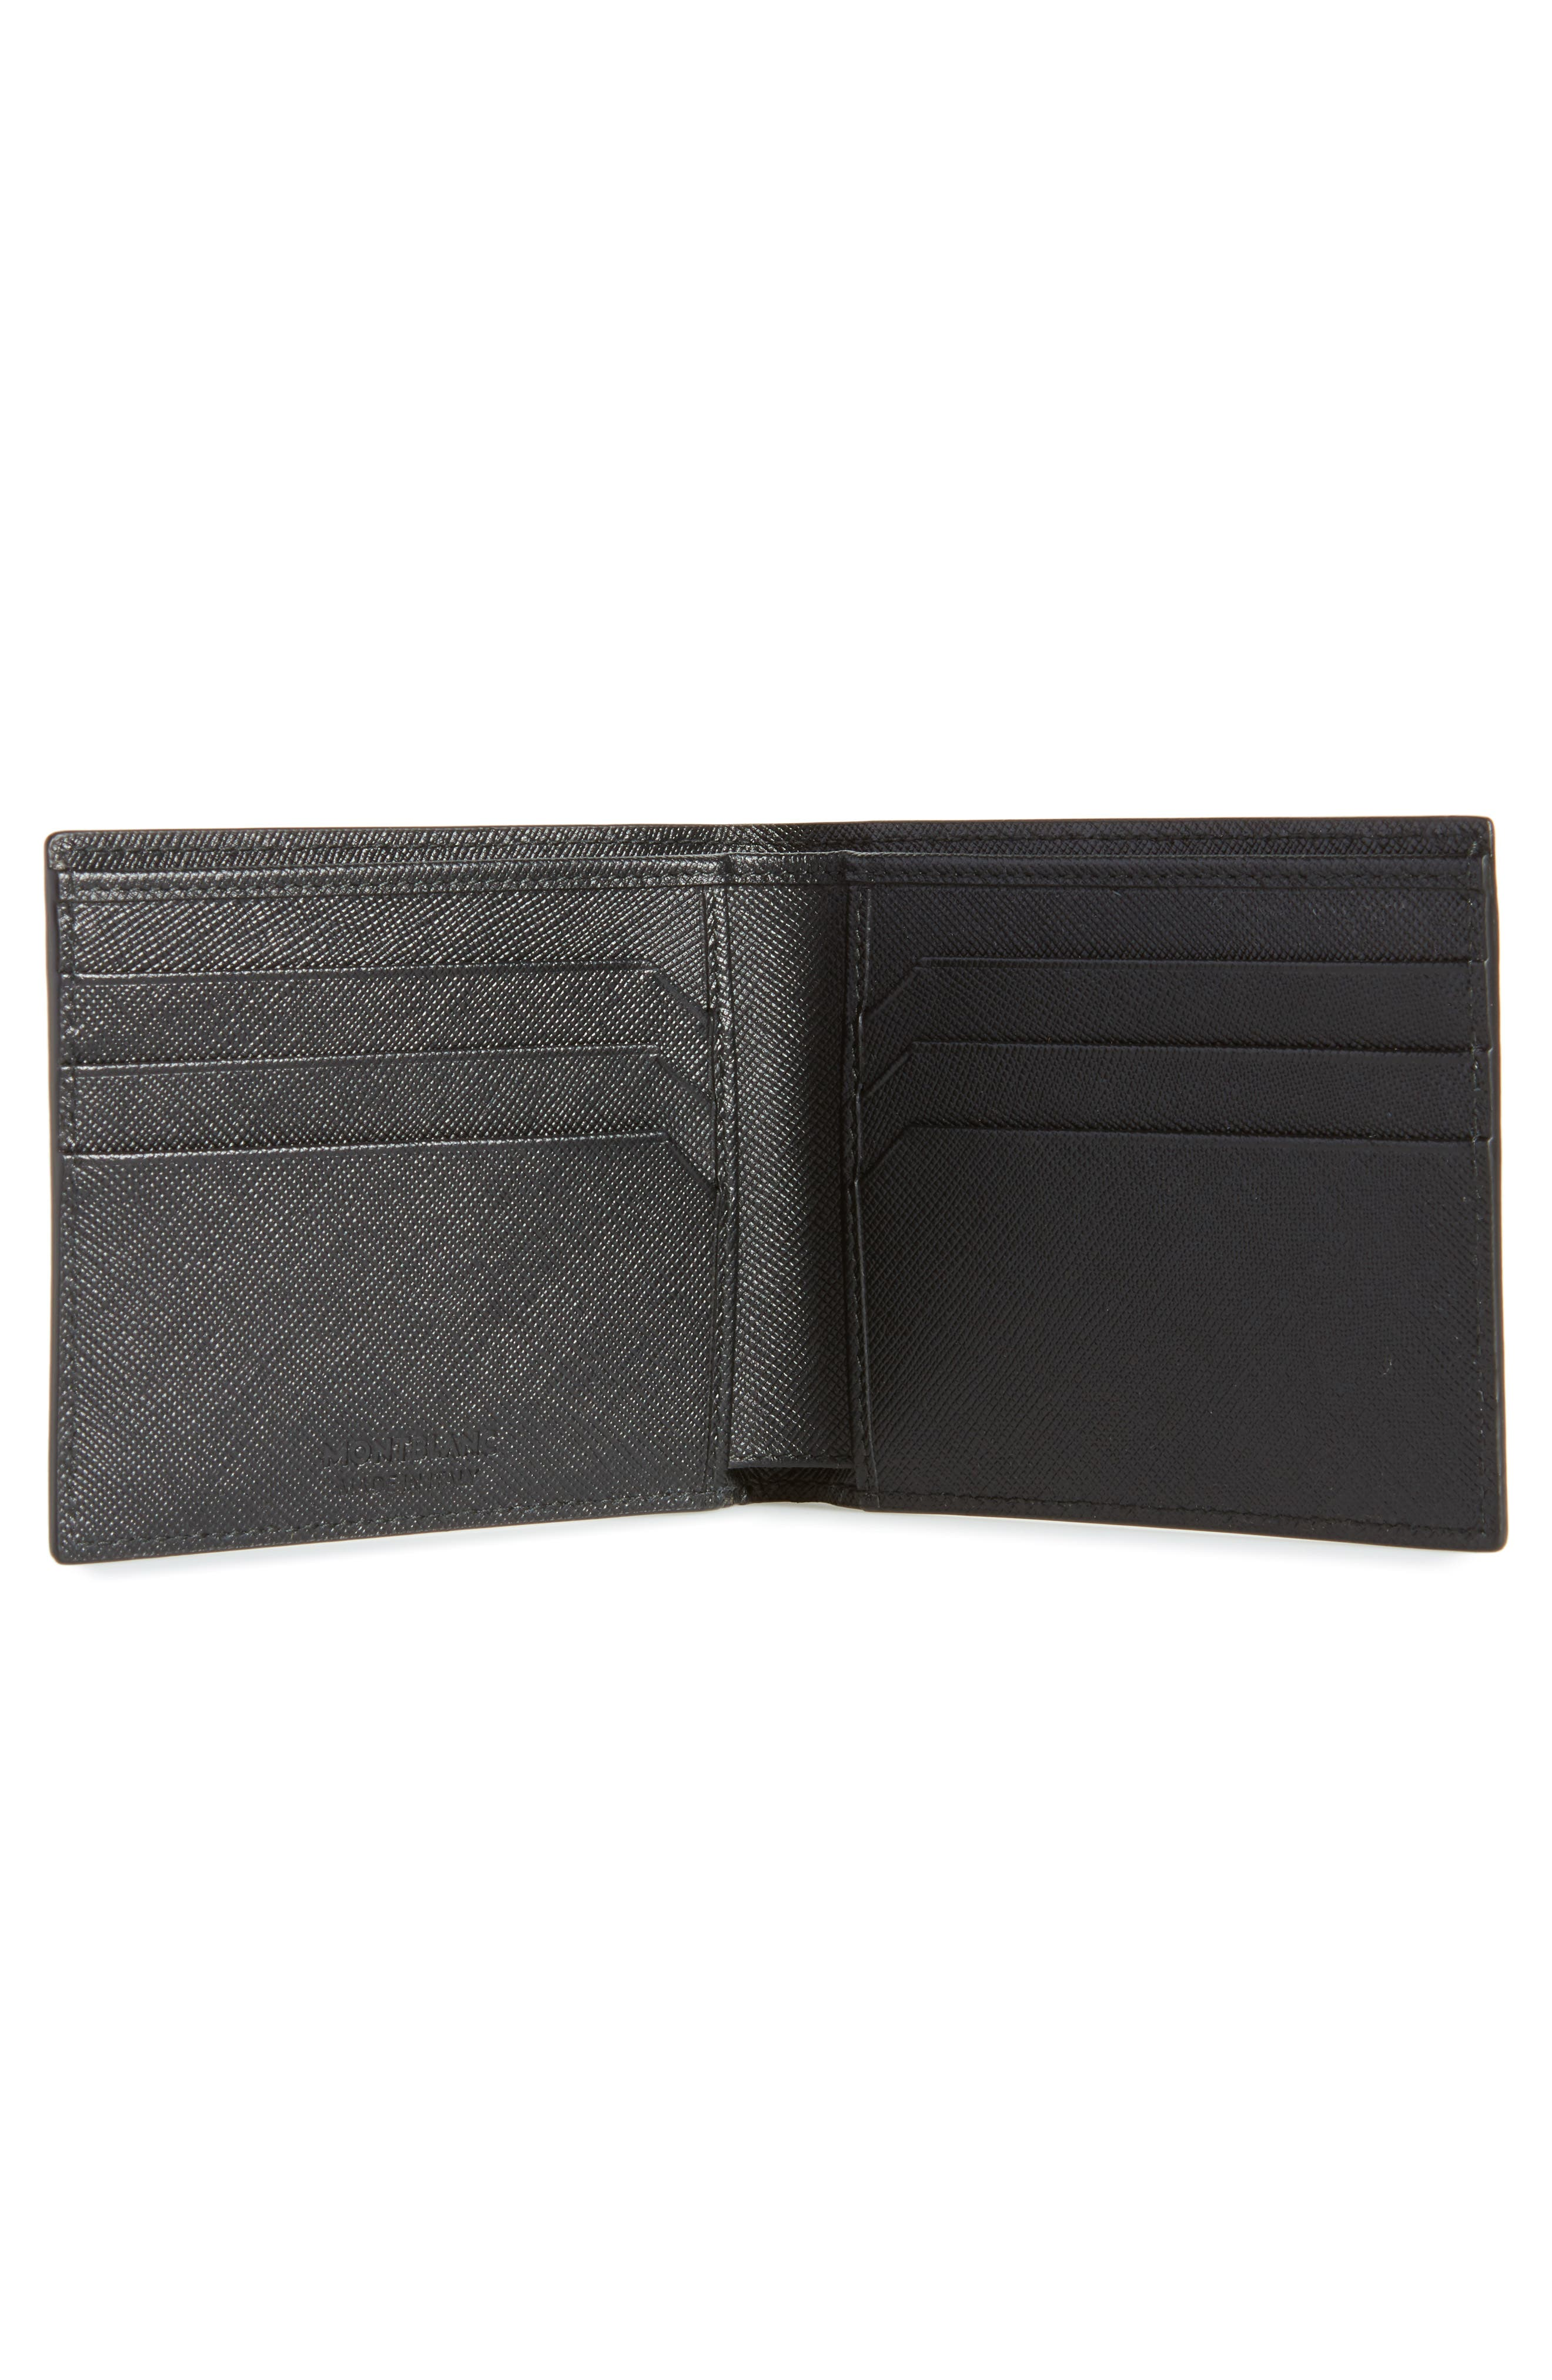 Sartorial Leather Bifold Wallet,                             Alternate thumbnail 2, color,                             001